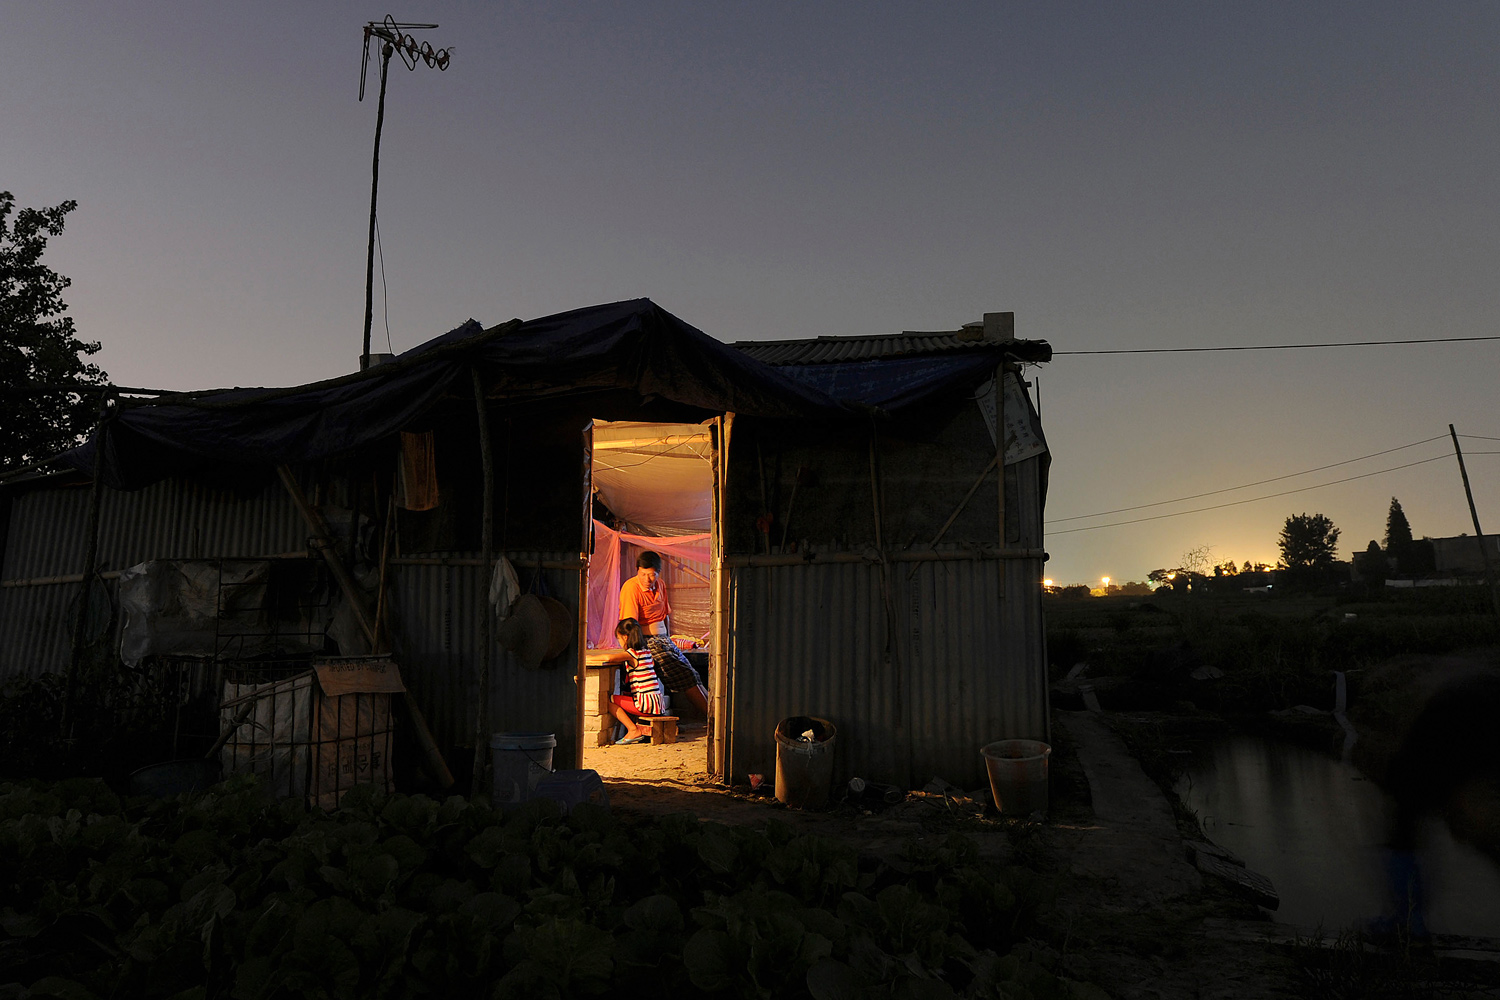 August 12, 2011. A farmer talks to his daughter in his wooden shed amid a vegetable farm on the outskirts of Hefei in China.